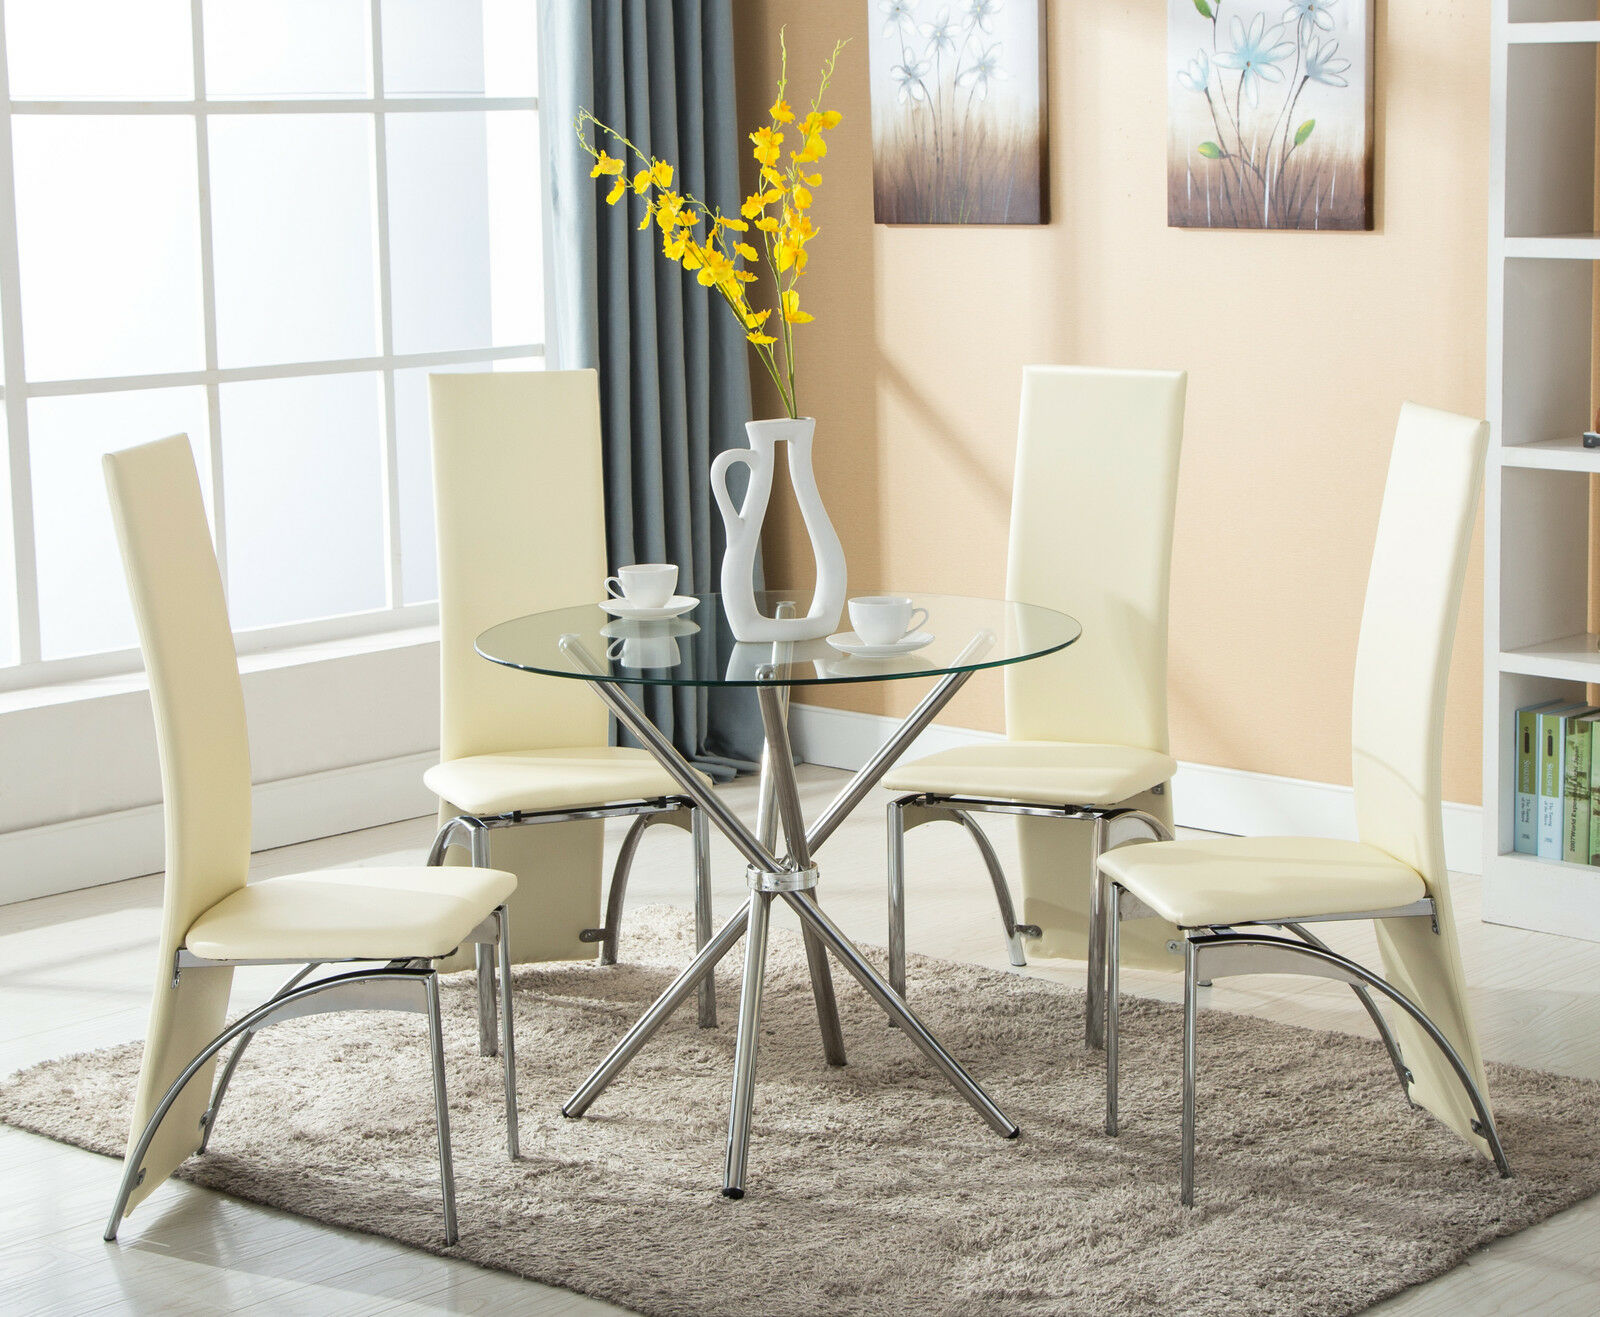 Round Kitchen Table And Chairs Set 5 Piece 4 Chairs Dining Table Set Round Glass High Back